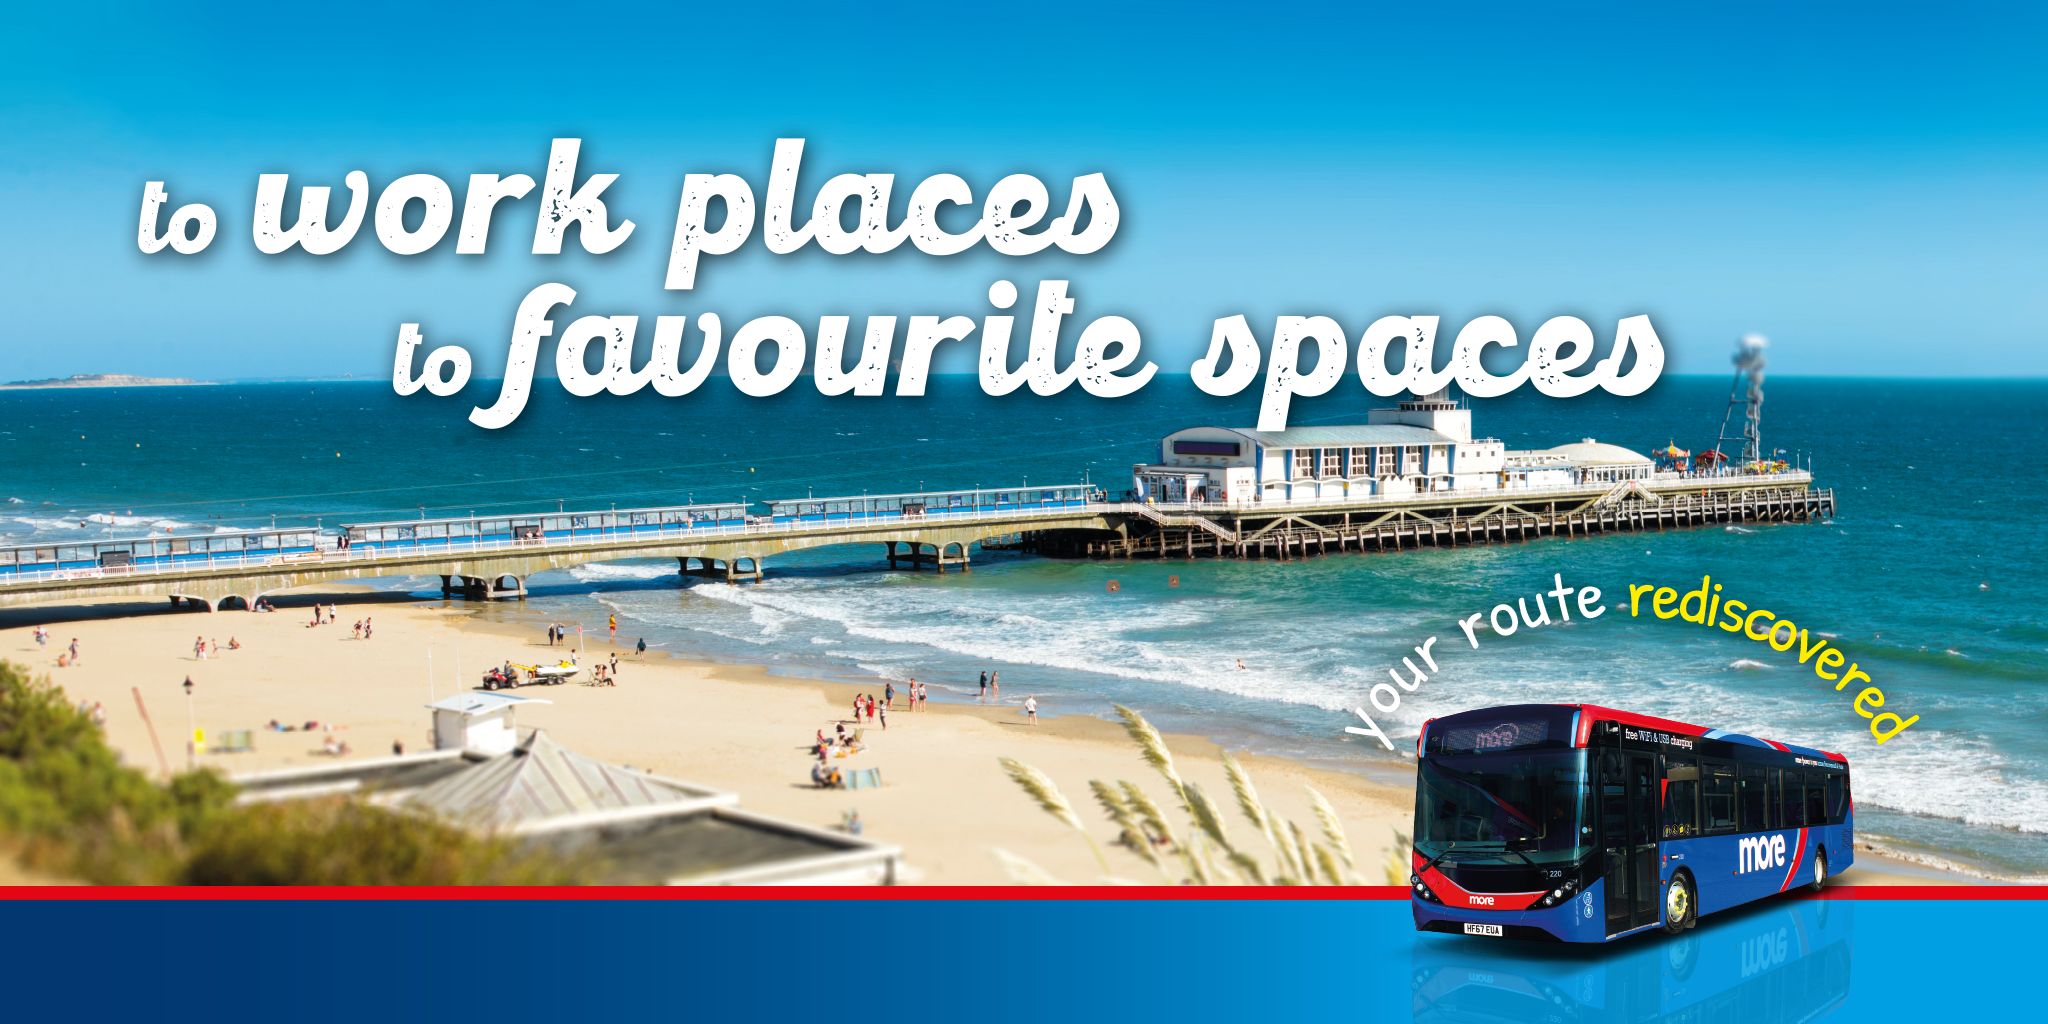 Photo of Bournemouth Pier & Beach with the text 'to work places, to favourite spaces. Your route rediscovered'